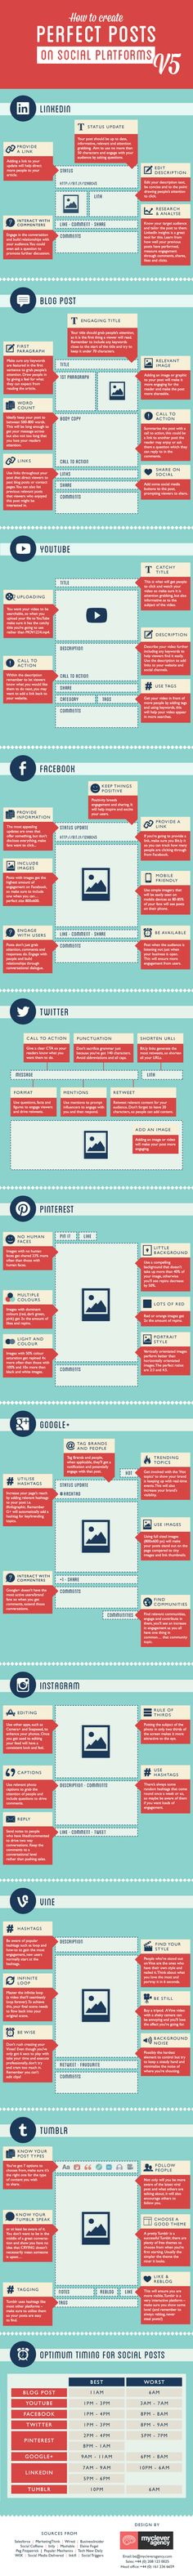 how-to-create-perfect-posts-on-social-plataforms